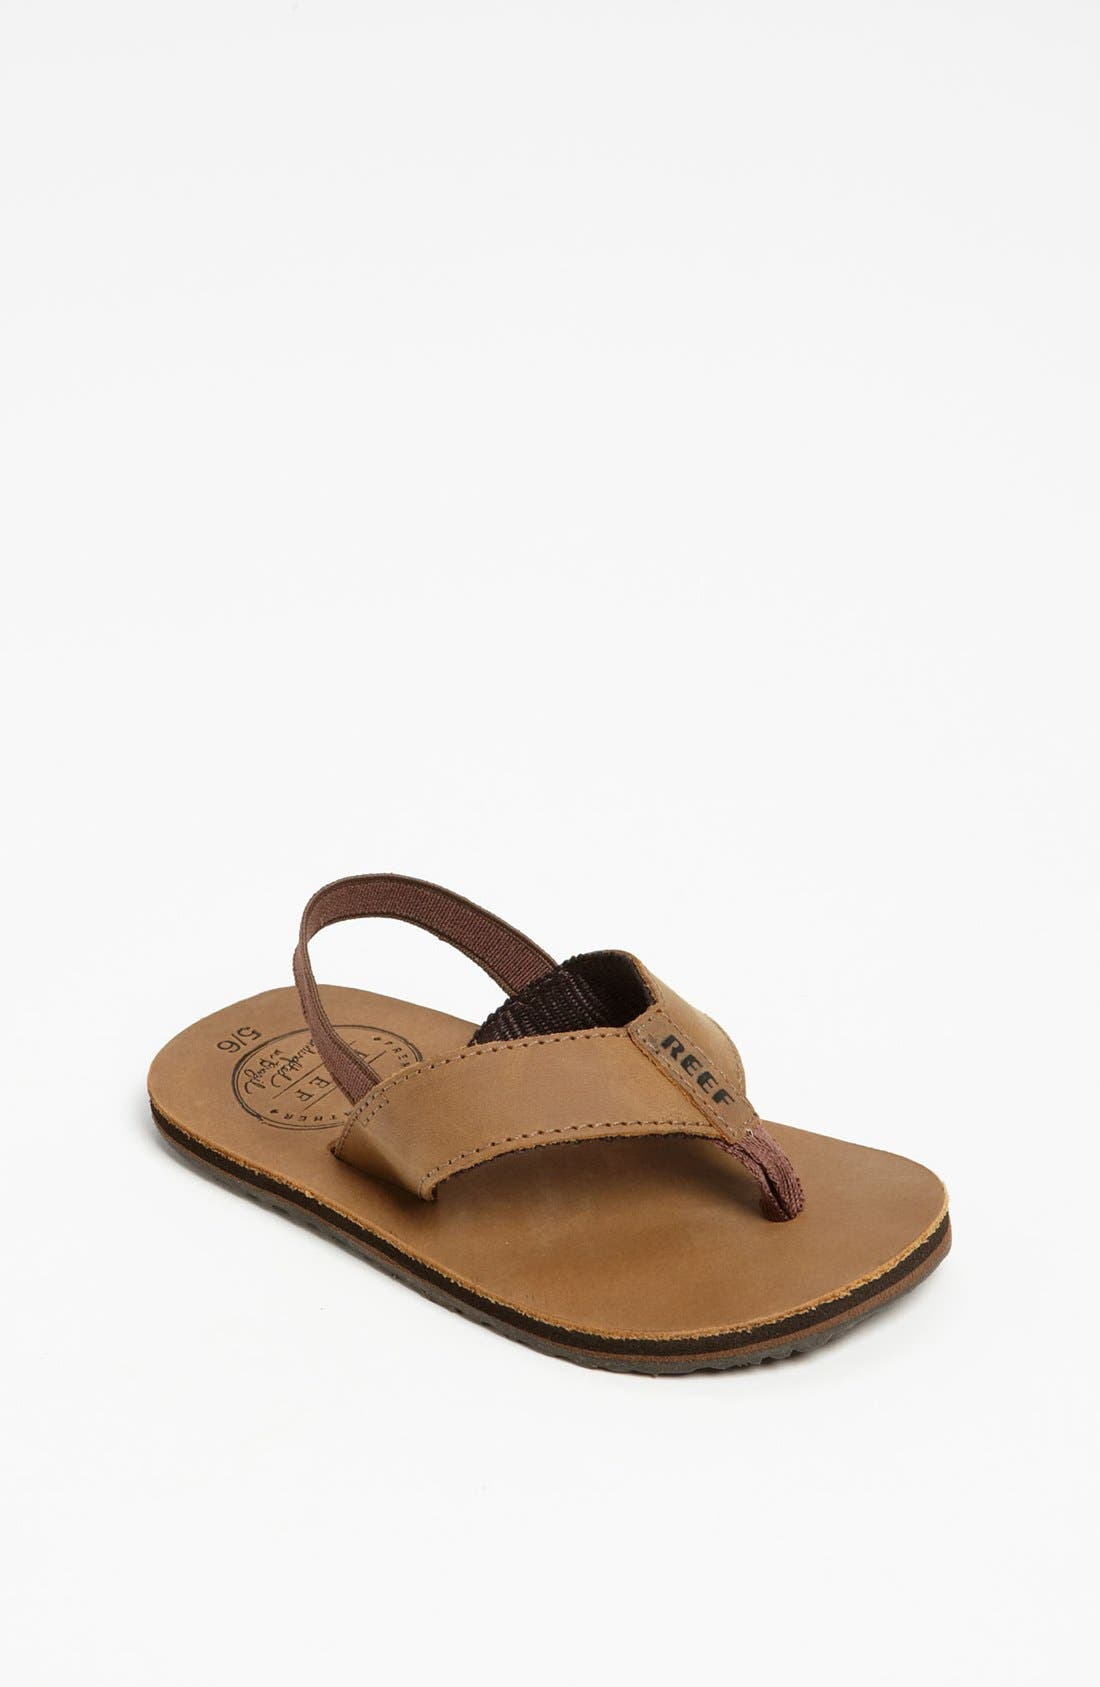 'Grom' Leather Flip-Flop,                         Main,                         color, BRONZE BROWN